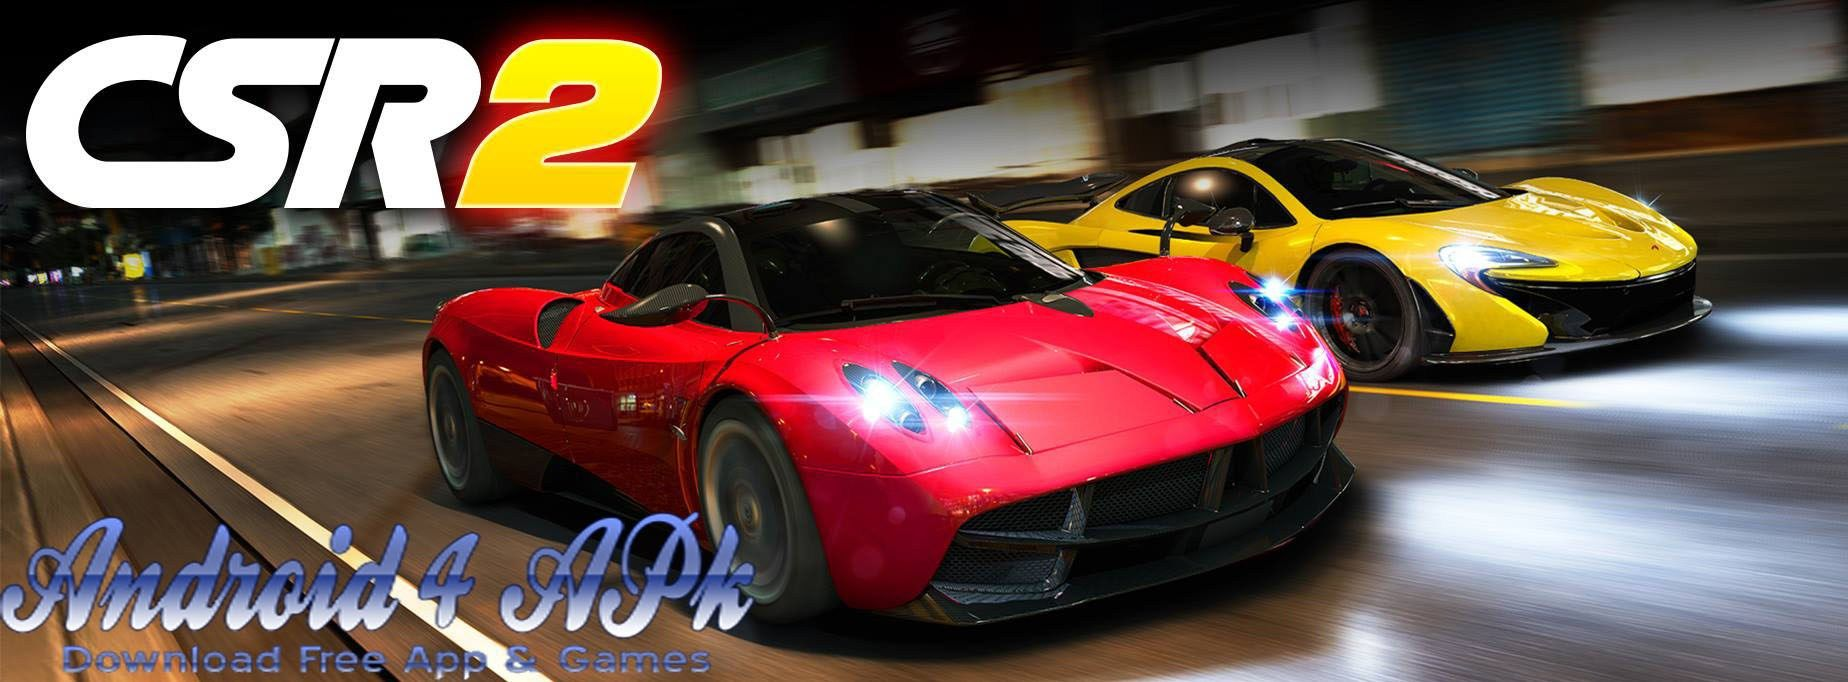 Csr Racing 2 Apk Obb For Android Download Free With Images